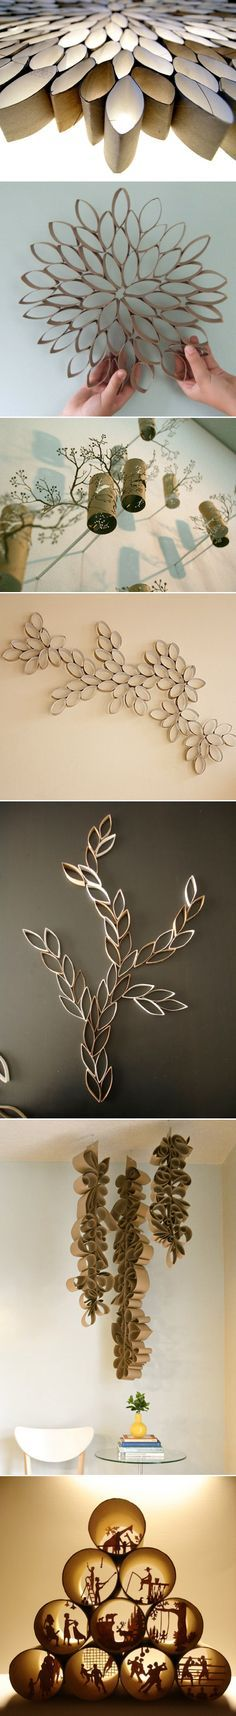 wall-decor-projects-14